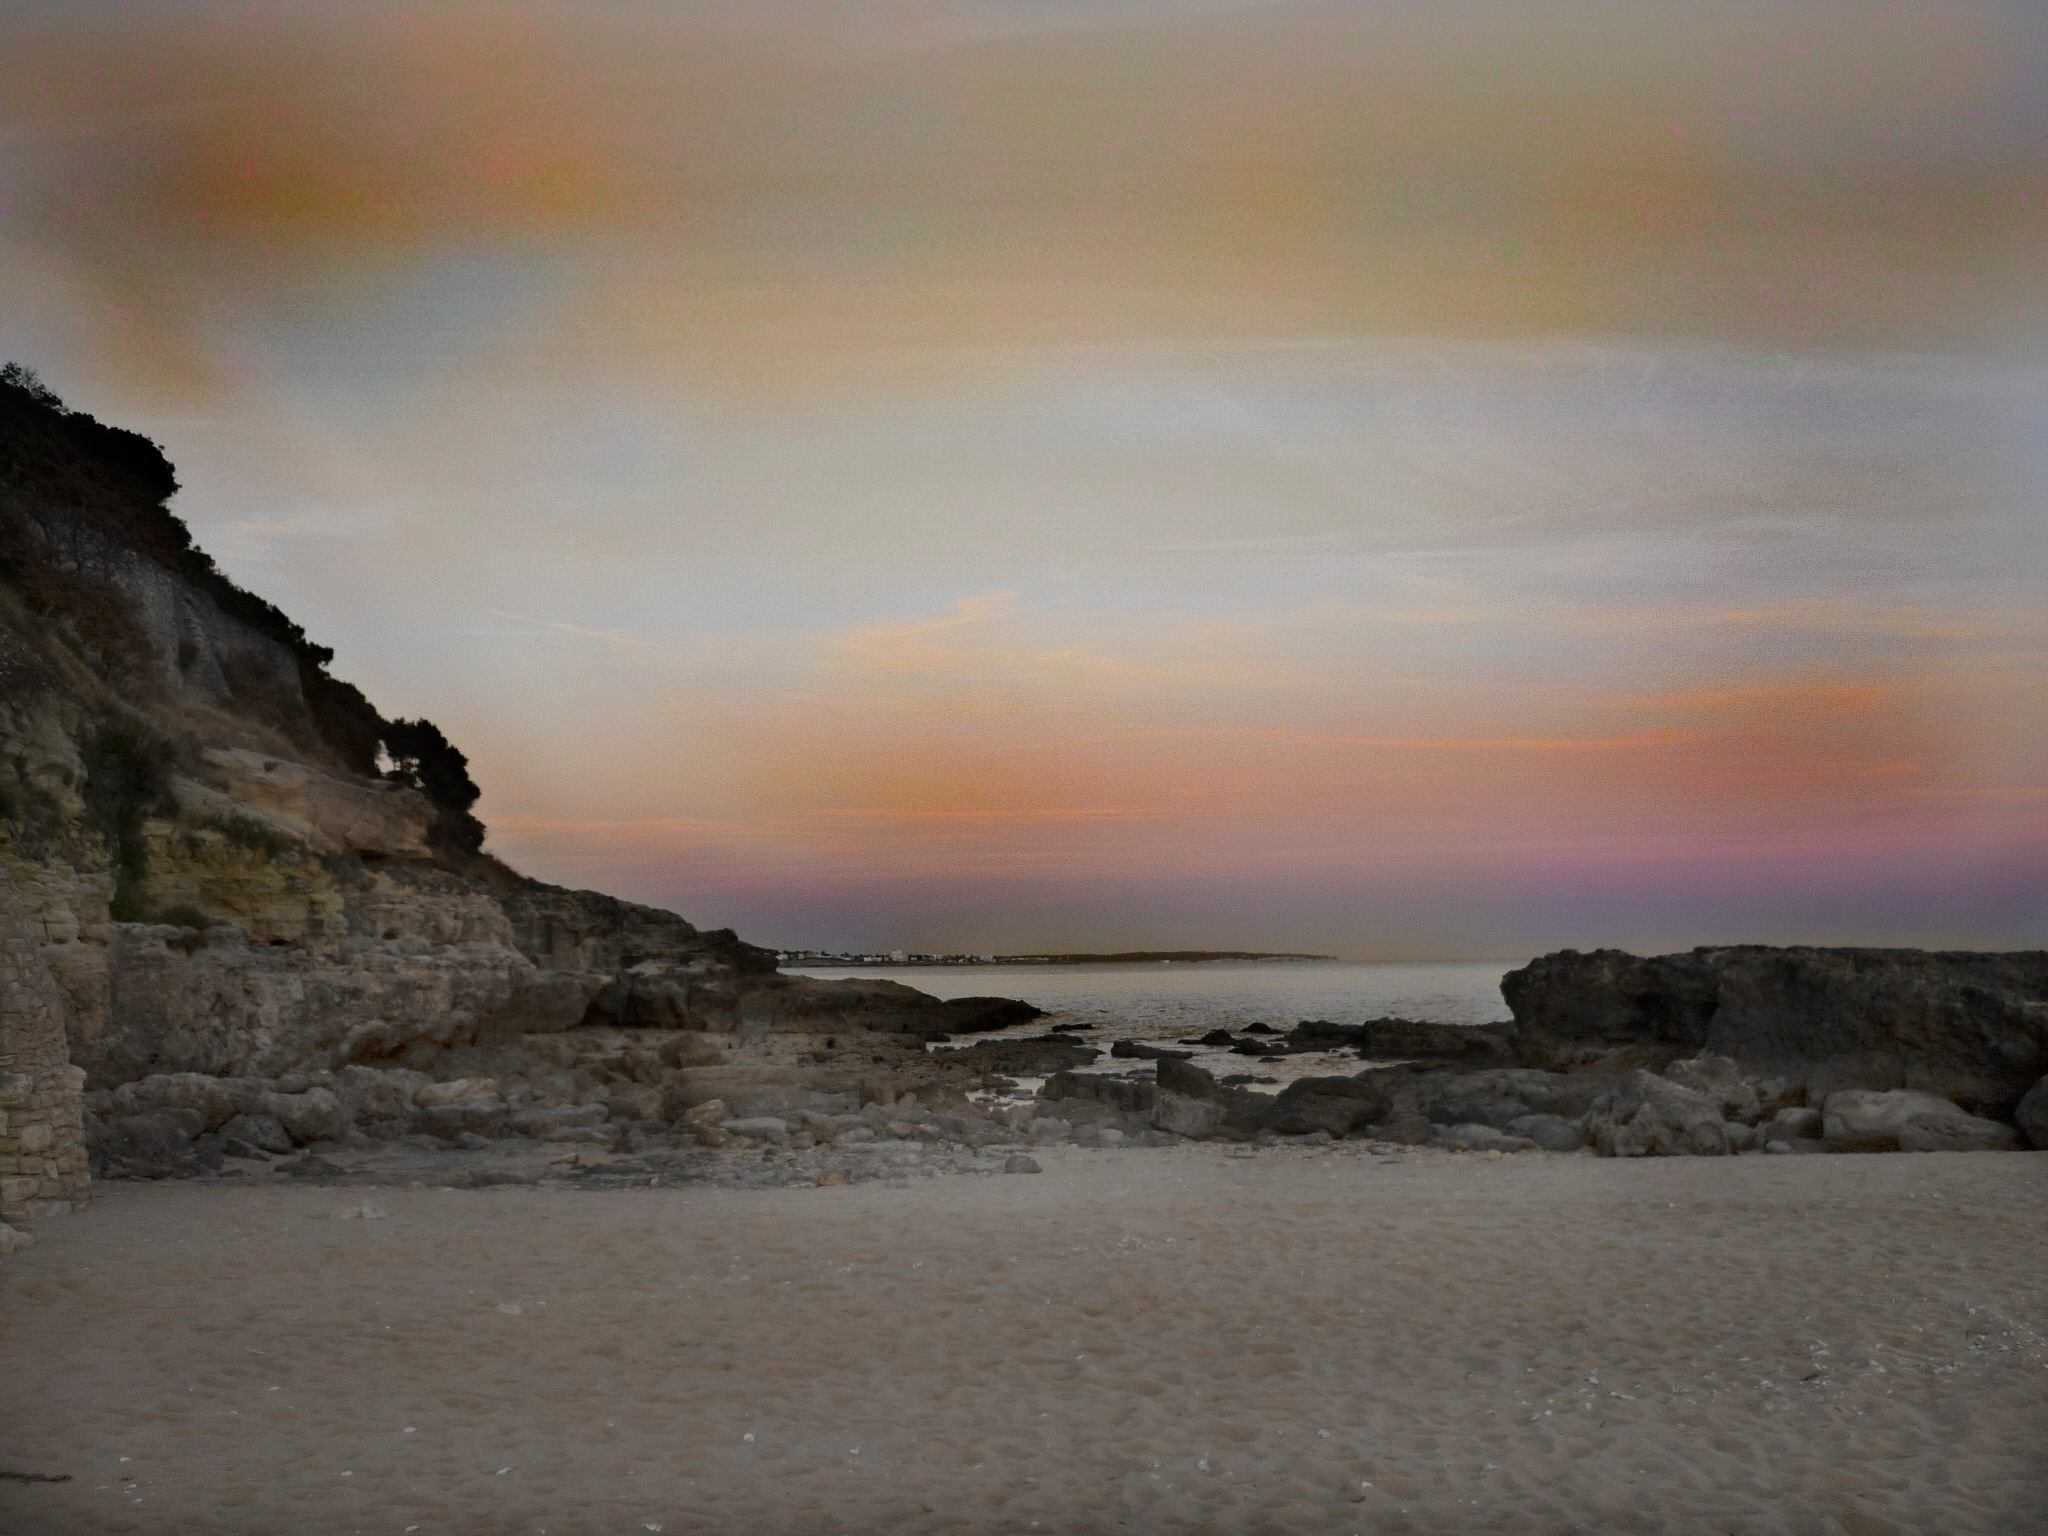 Sunset on the Beach - Reprise by stephen.harding.735